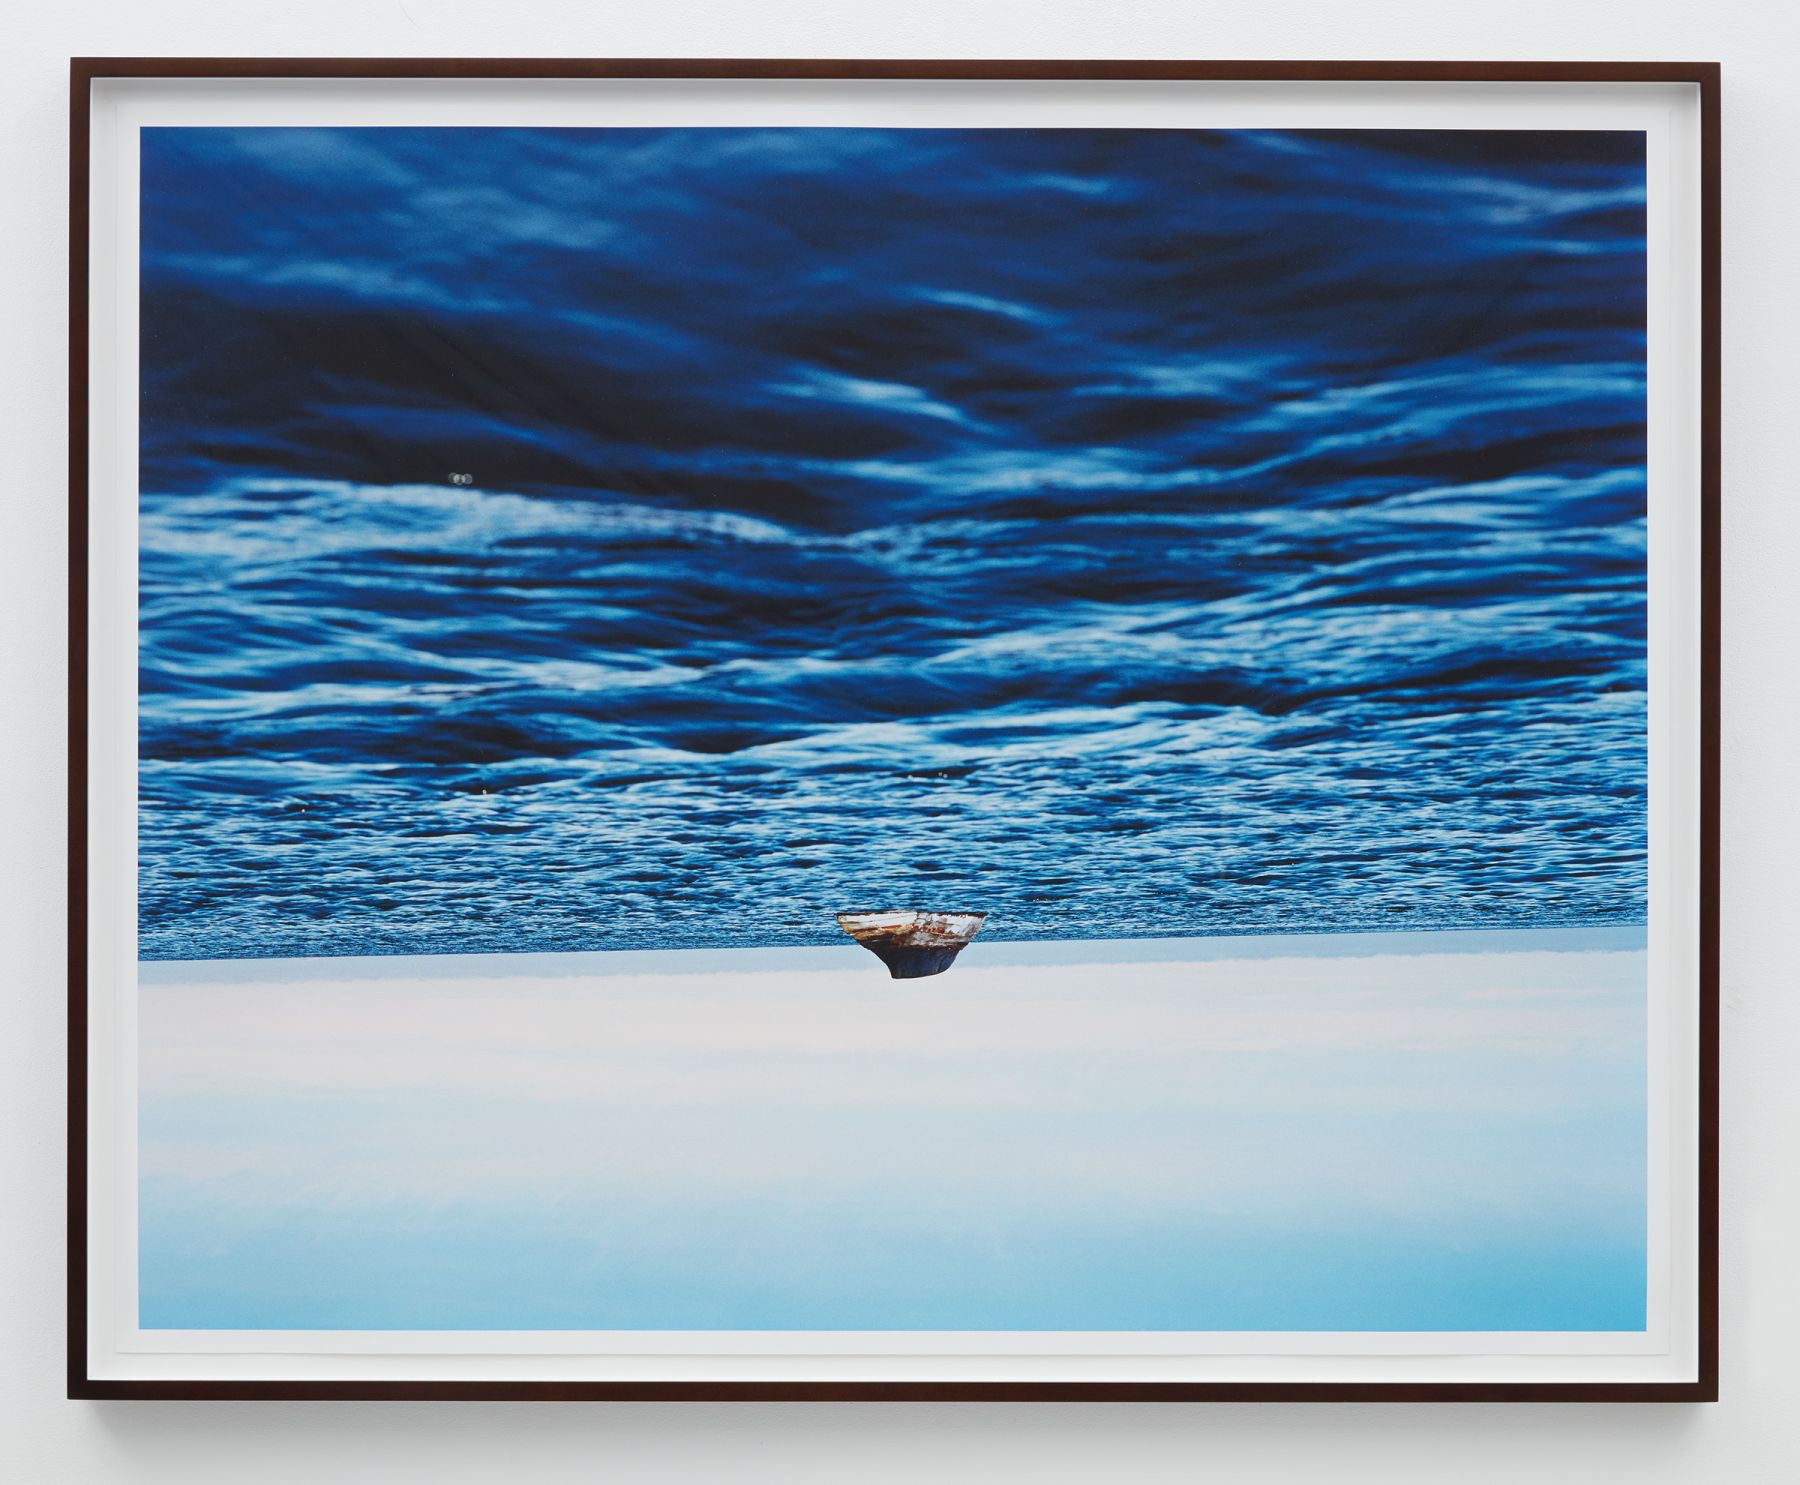 a photograph of a boat on water by thiago rocha pitta who is interested in art about the environment